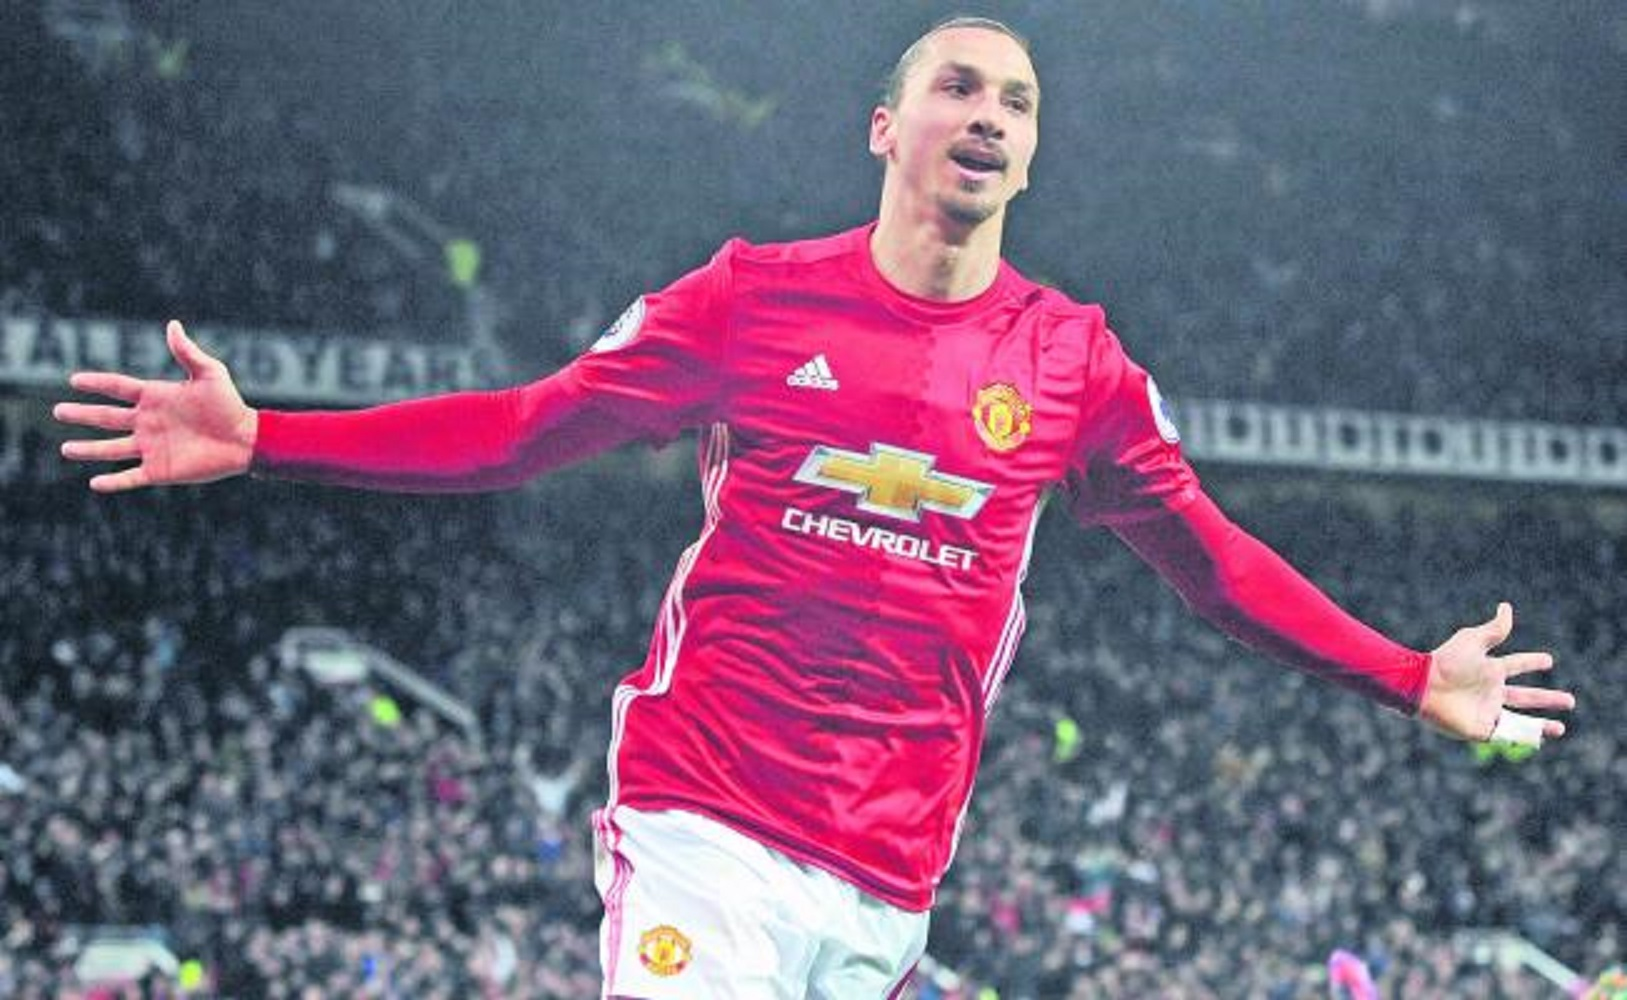 Manchester United, Europa League, Community Shield, United, Ibrahimovic